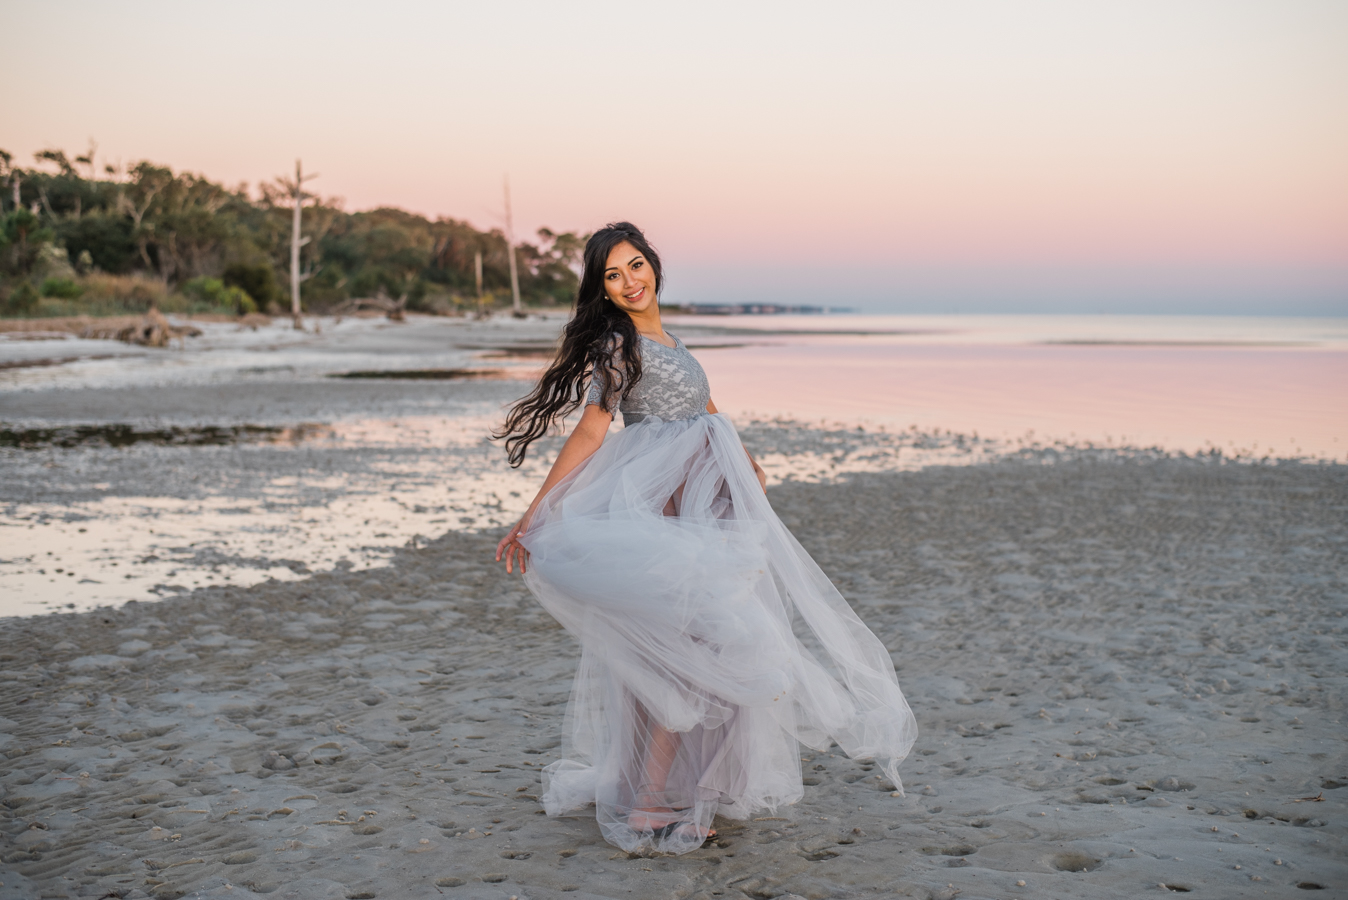 lady twirling by ocean-pensacola maternity photographer